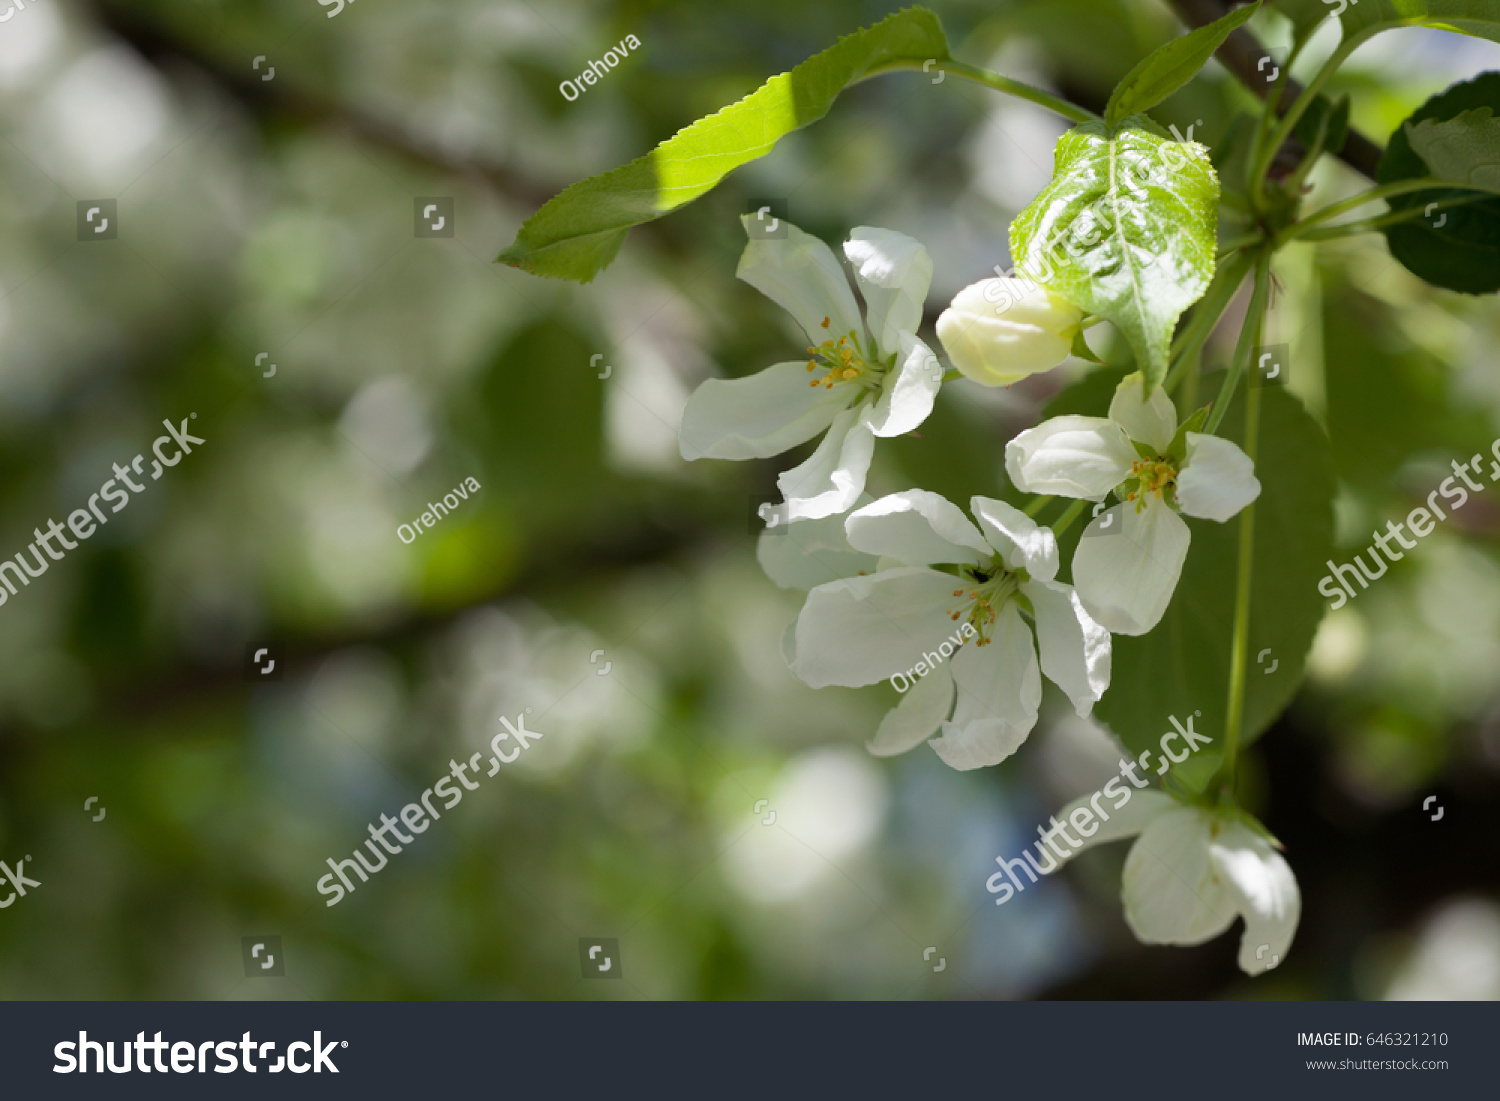 The Branches Of The Cherry Blossoms With Delicate White Flowers Ez